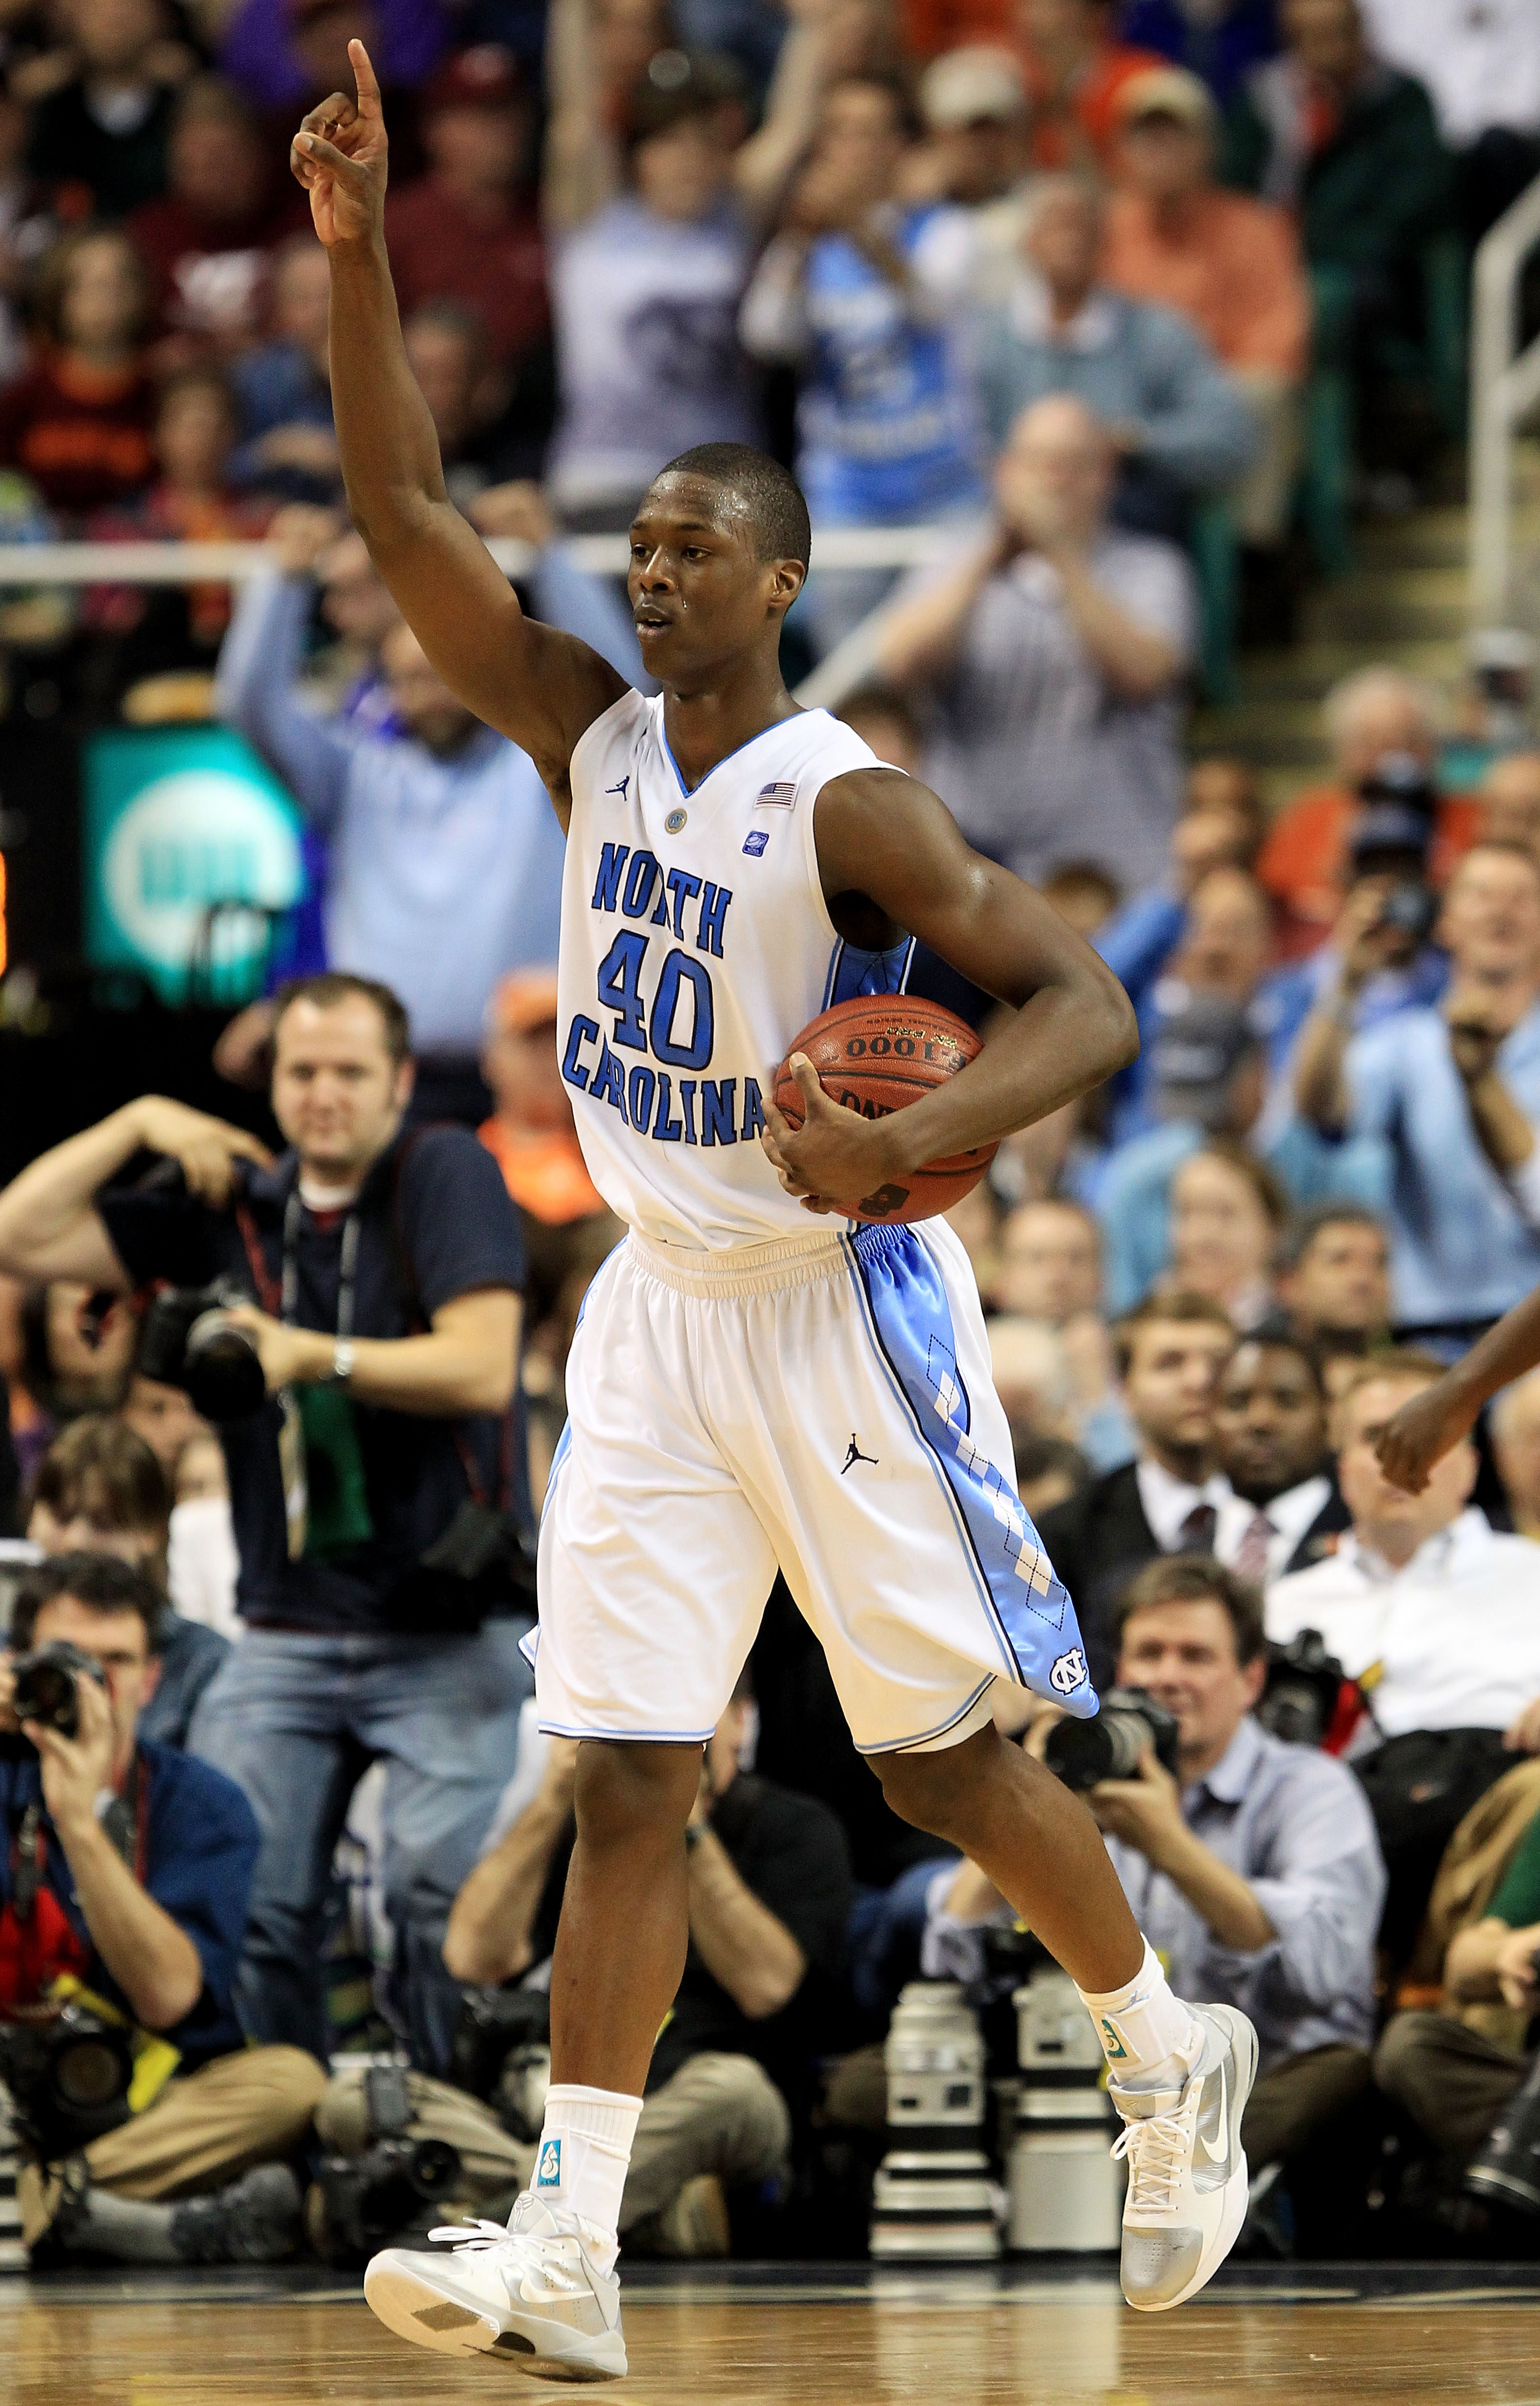 GREENSBORO, NC - MARCH 12:  Harrison Barnes #40 of the North Carolina Tar Heels celebrates their 92-87 win over the Clemson Tigers during overtime in the semifinals of the 2011 ACC men's basketball tournament at the Greensboro Coliseum on March 12, 2011 i